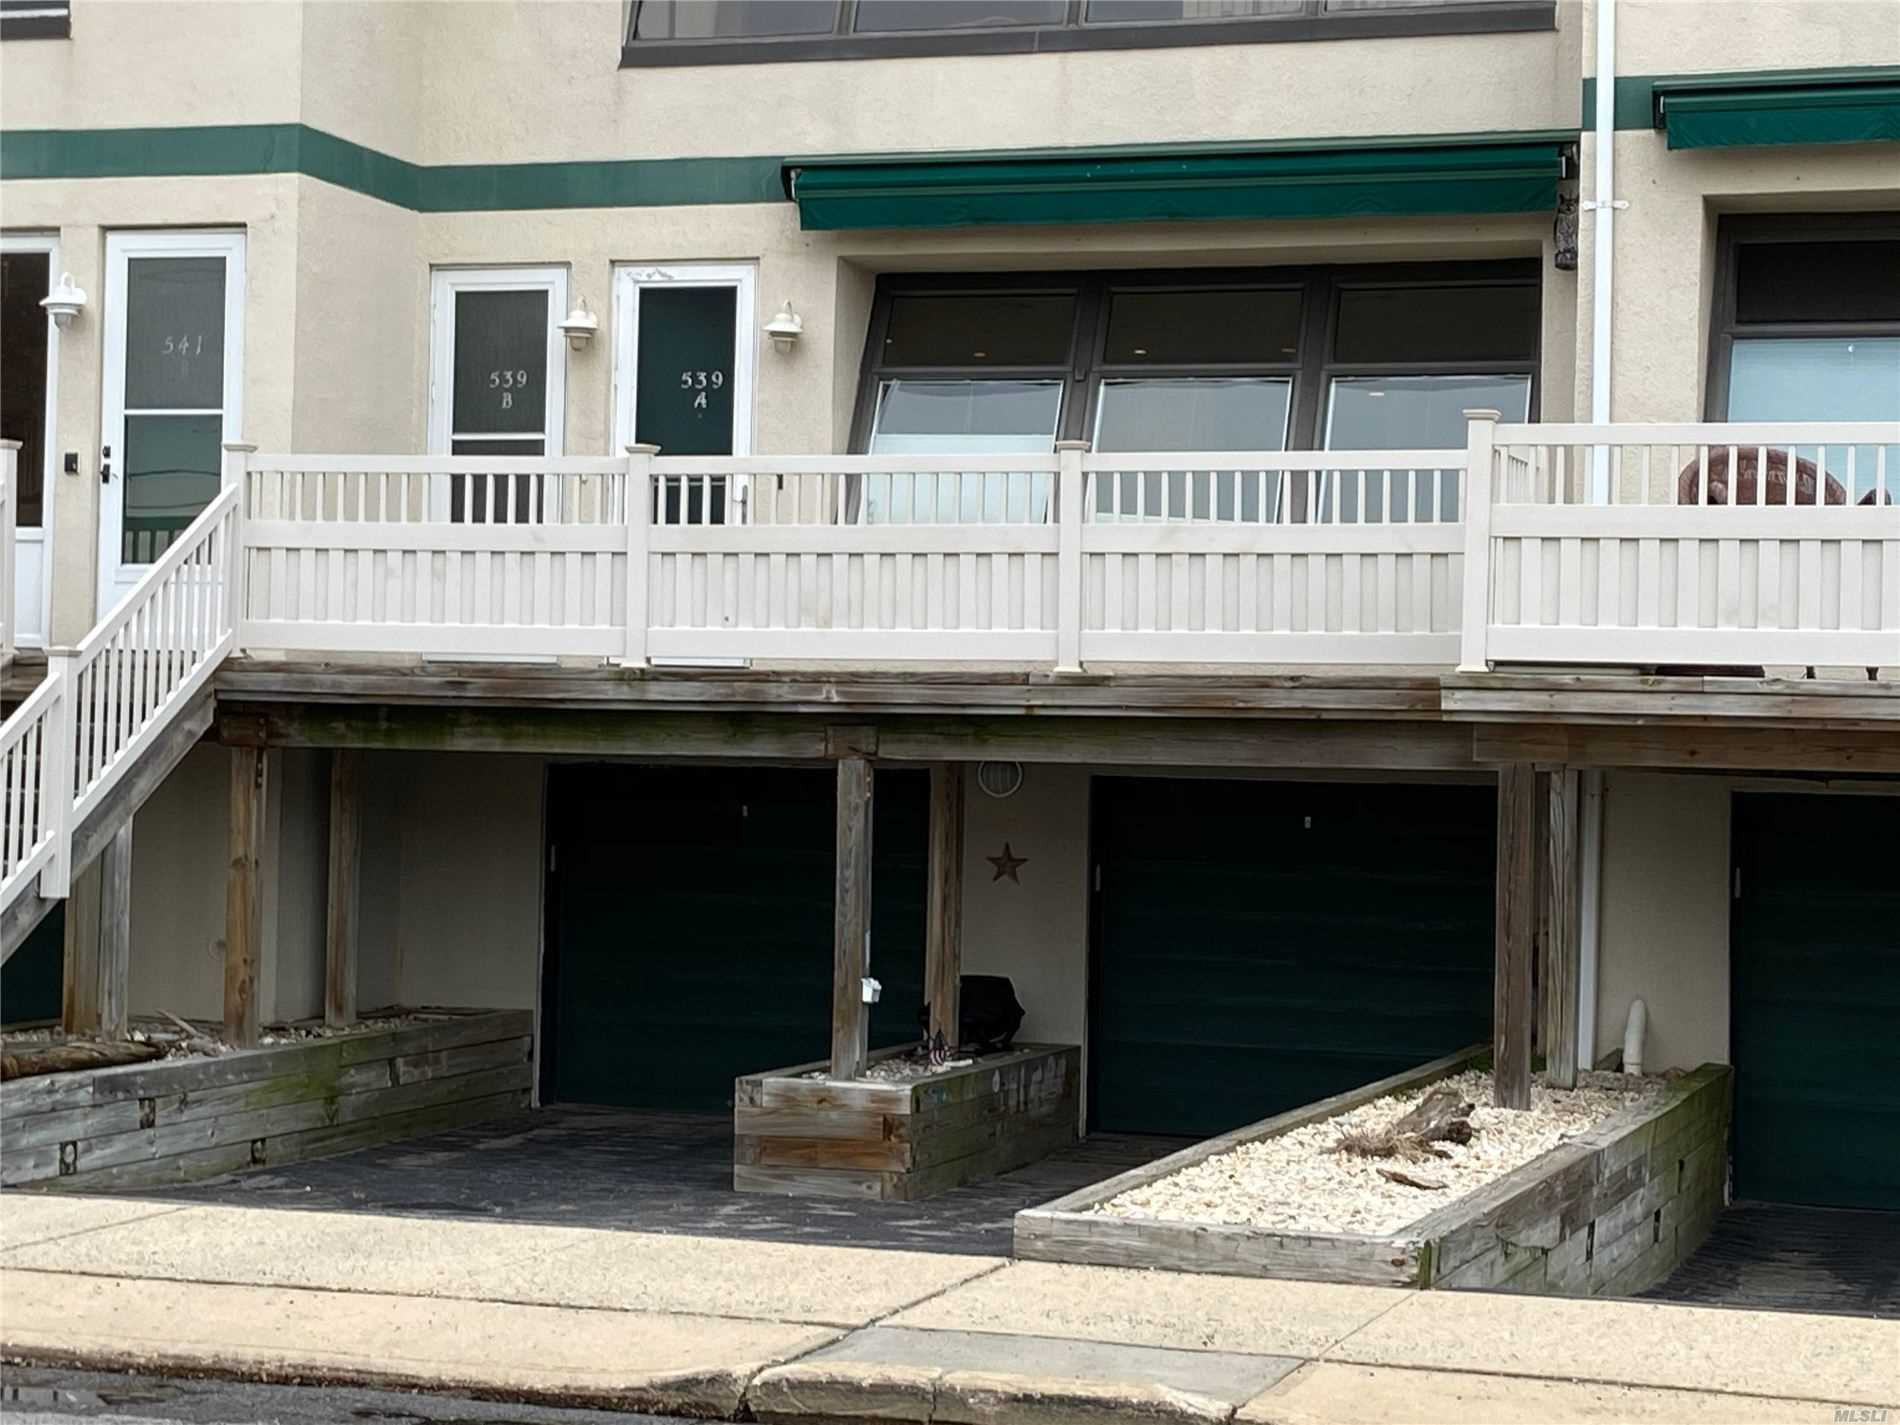 Property for sale at 539 W Broadway # A, Long Beach NY 11561, Long Beach,  New York 11561